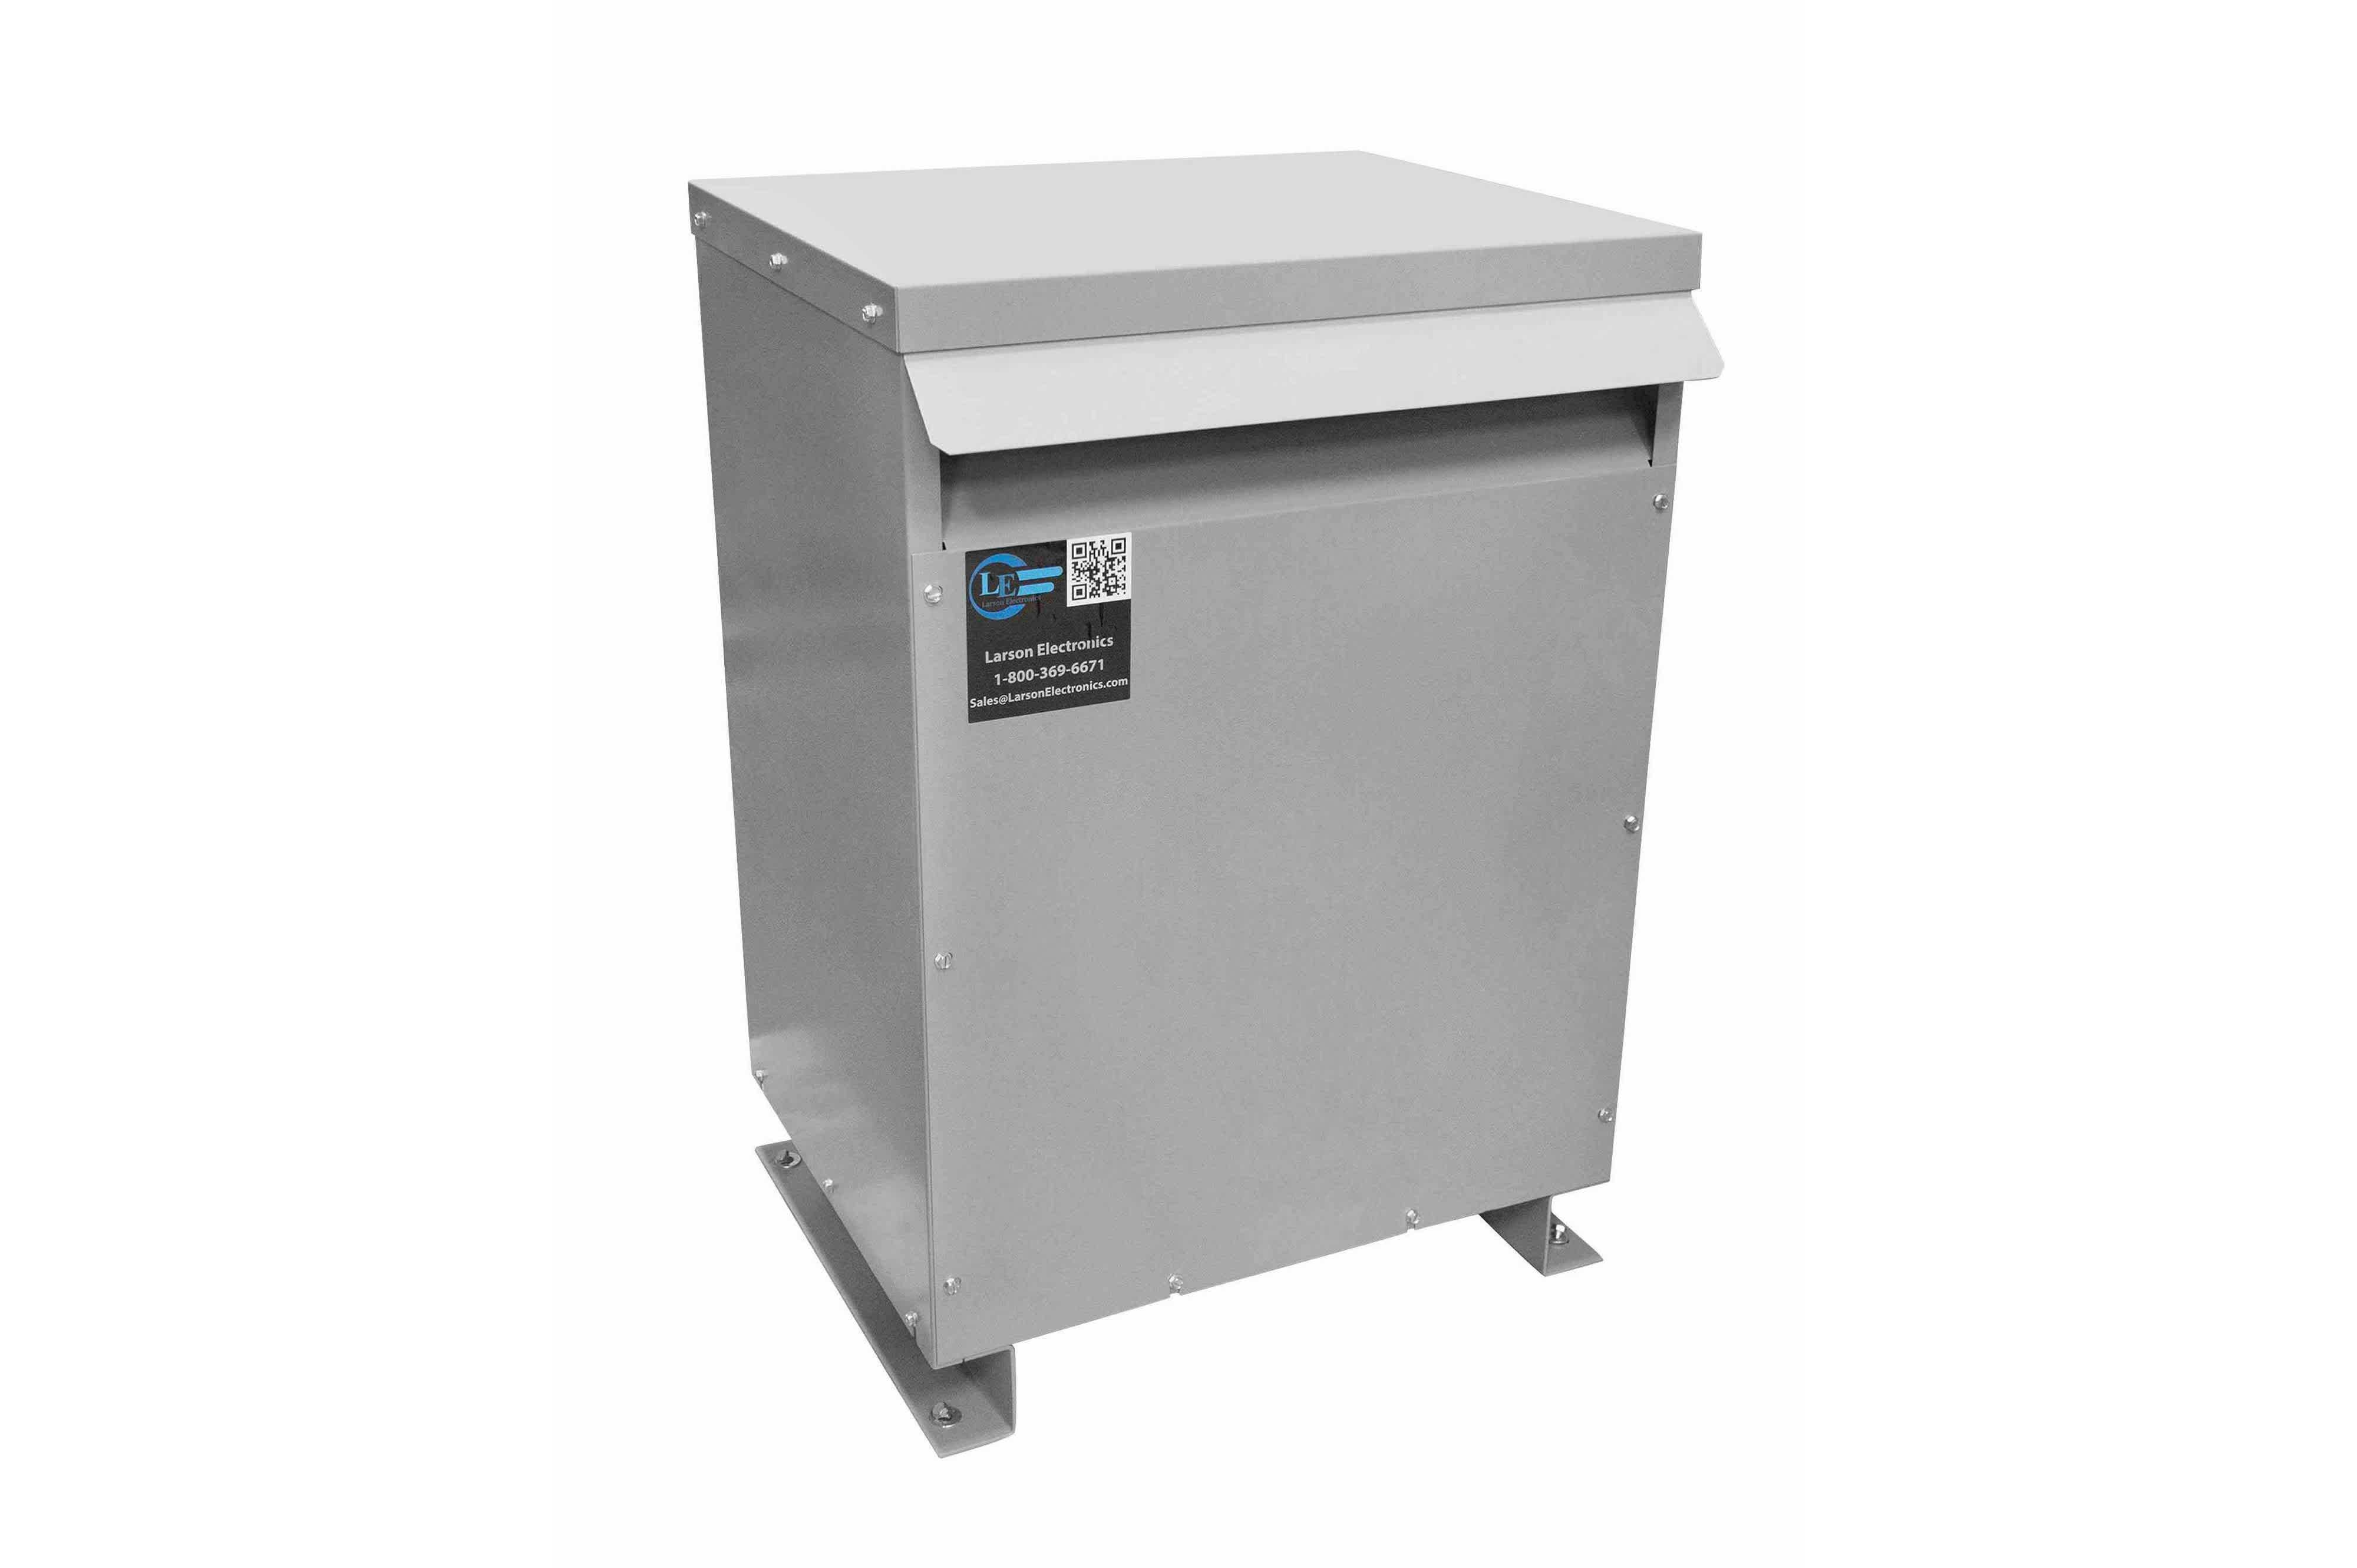 275 kVA 3PH Isolation Transformer, 600V Delta Primary, 460V Delta Secondary, N3R, Ventilated, 60 Hz